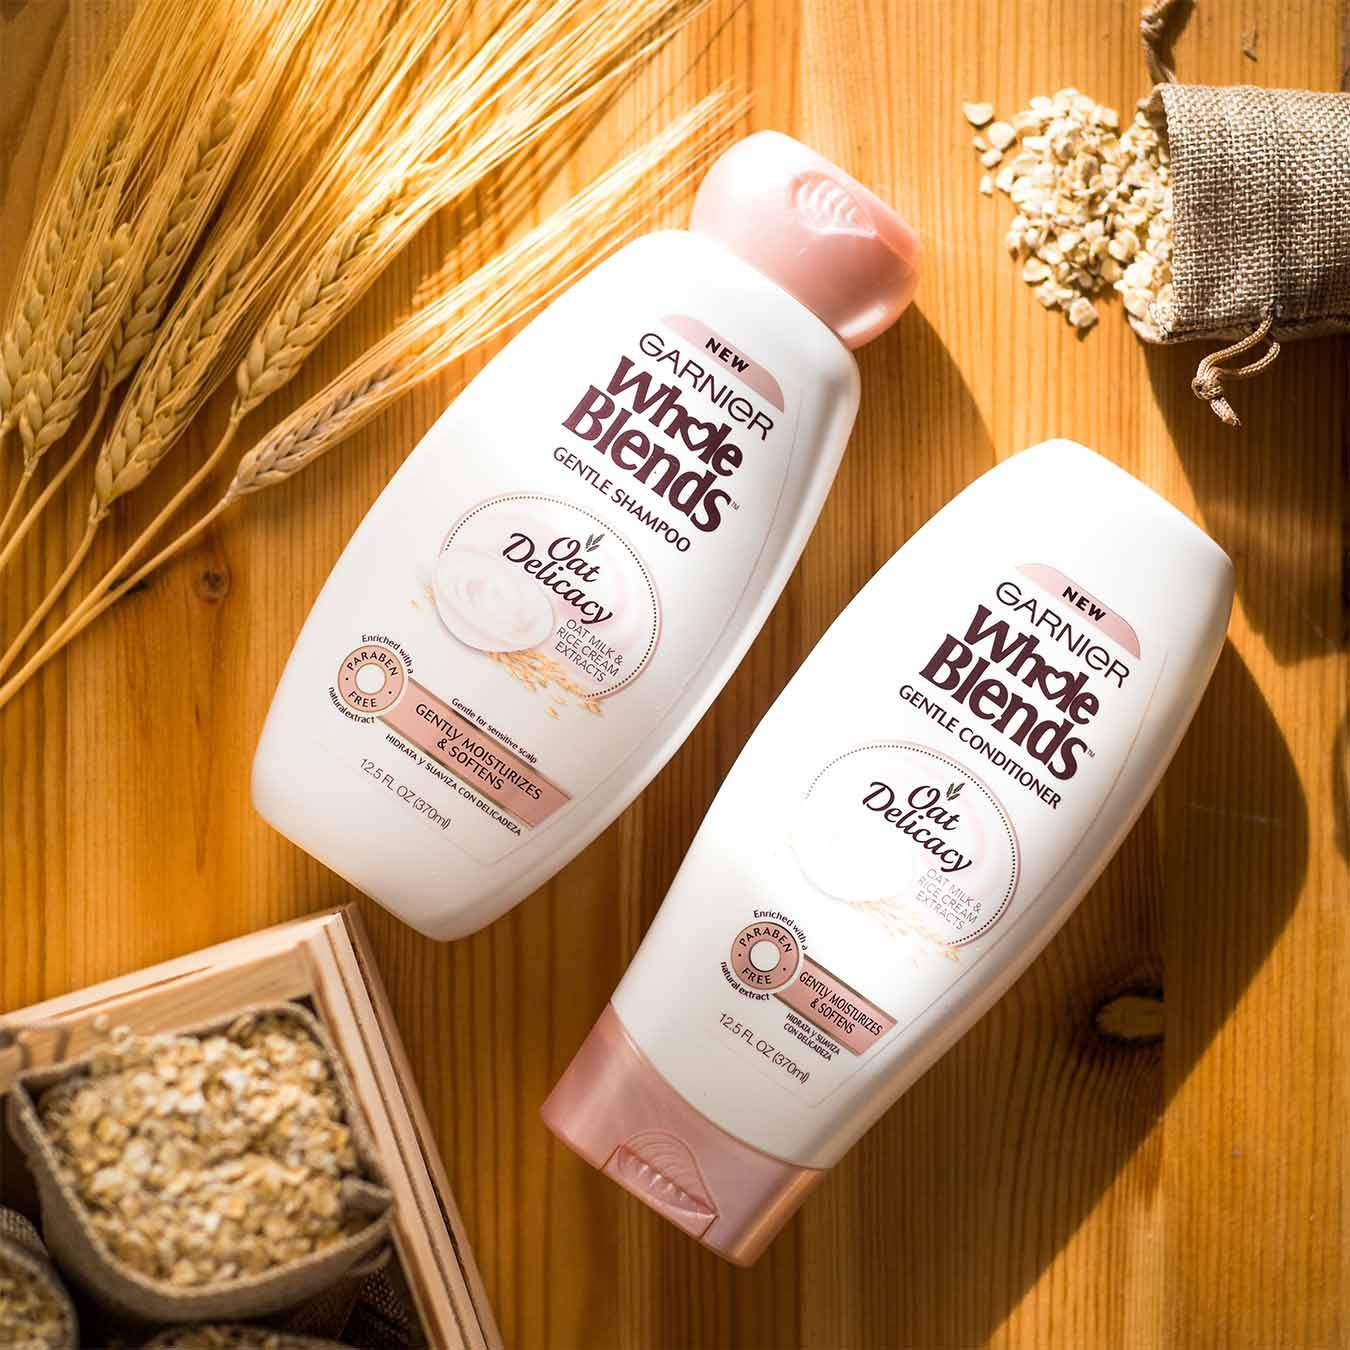 Whole Blends Oat Delicacy Shampoo and Oat Delicacy Conditioner on a wooden table with wheat stalks and a crate of small burlap sacks of oats, one of which has spilled.